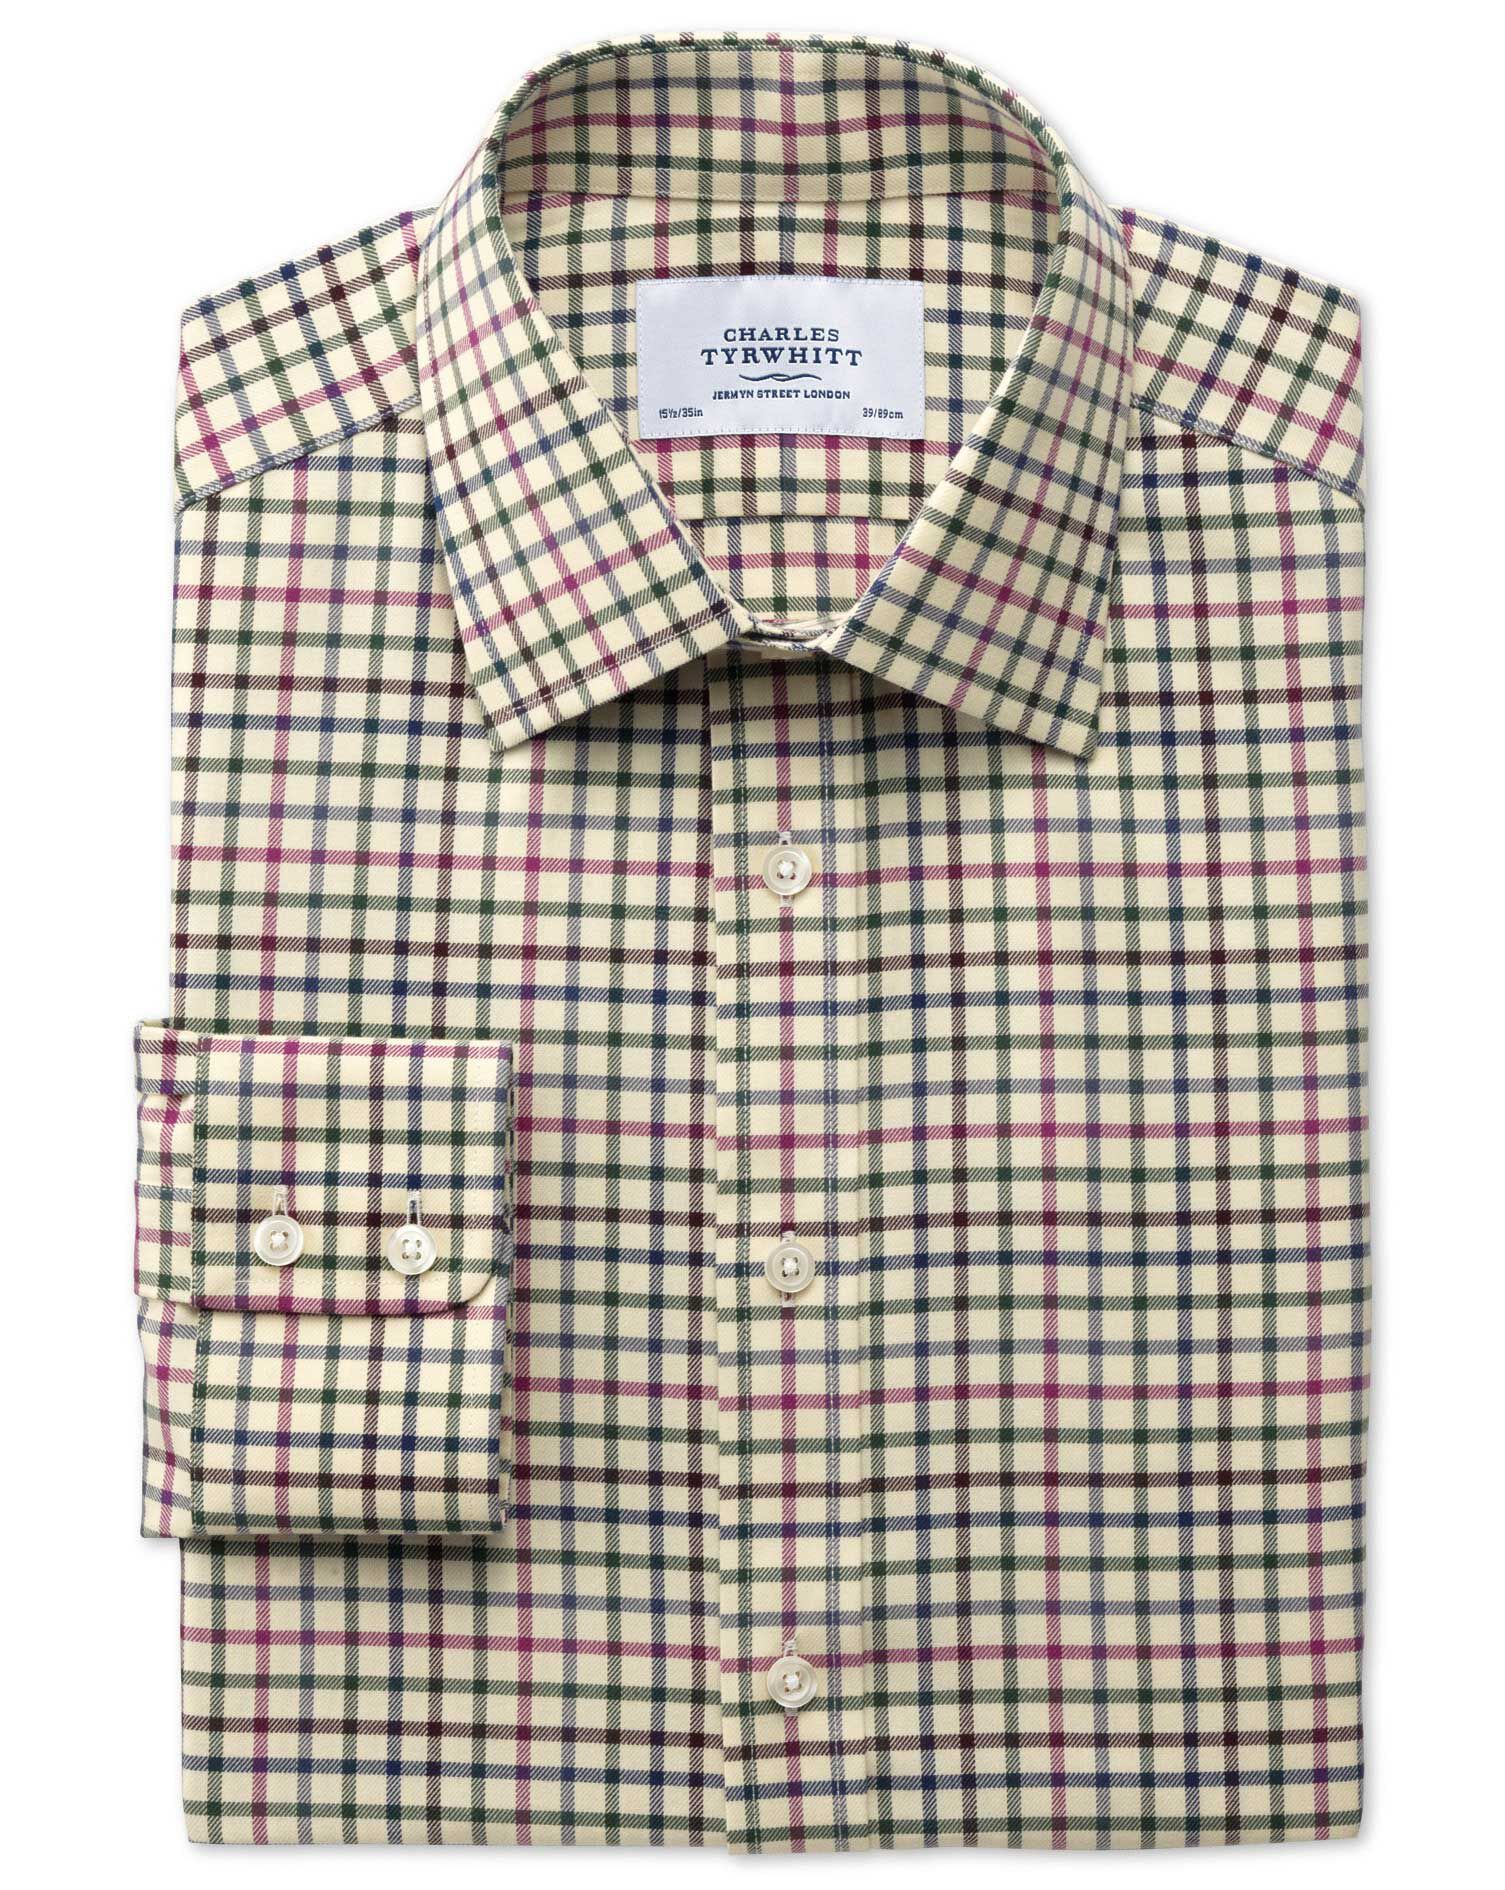 Classic Fit Country Check Pink and Green Cotton Formal Shirt Single Cuff Size 18/37 by Charles Tyrwh